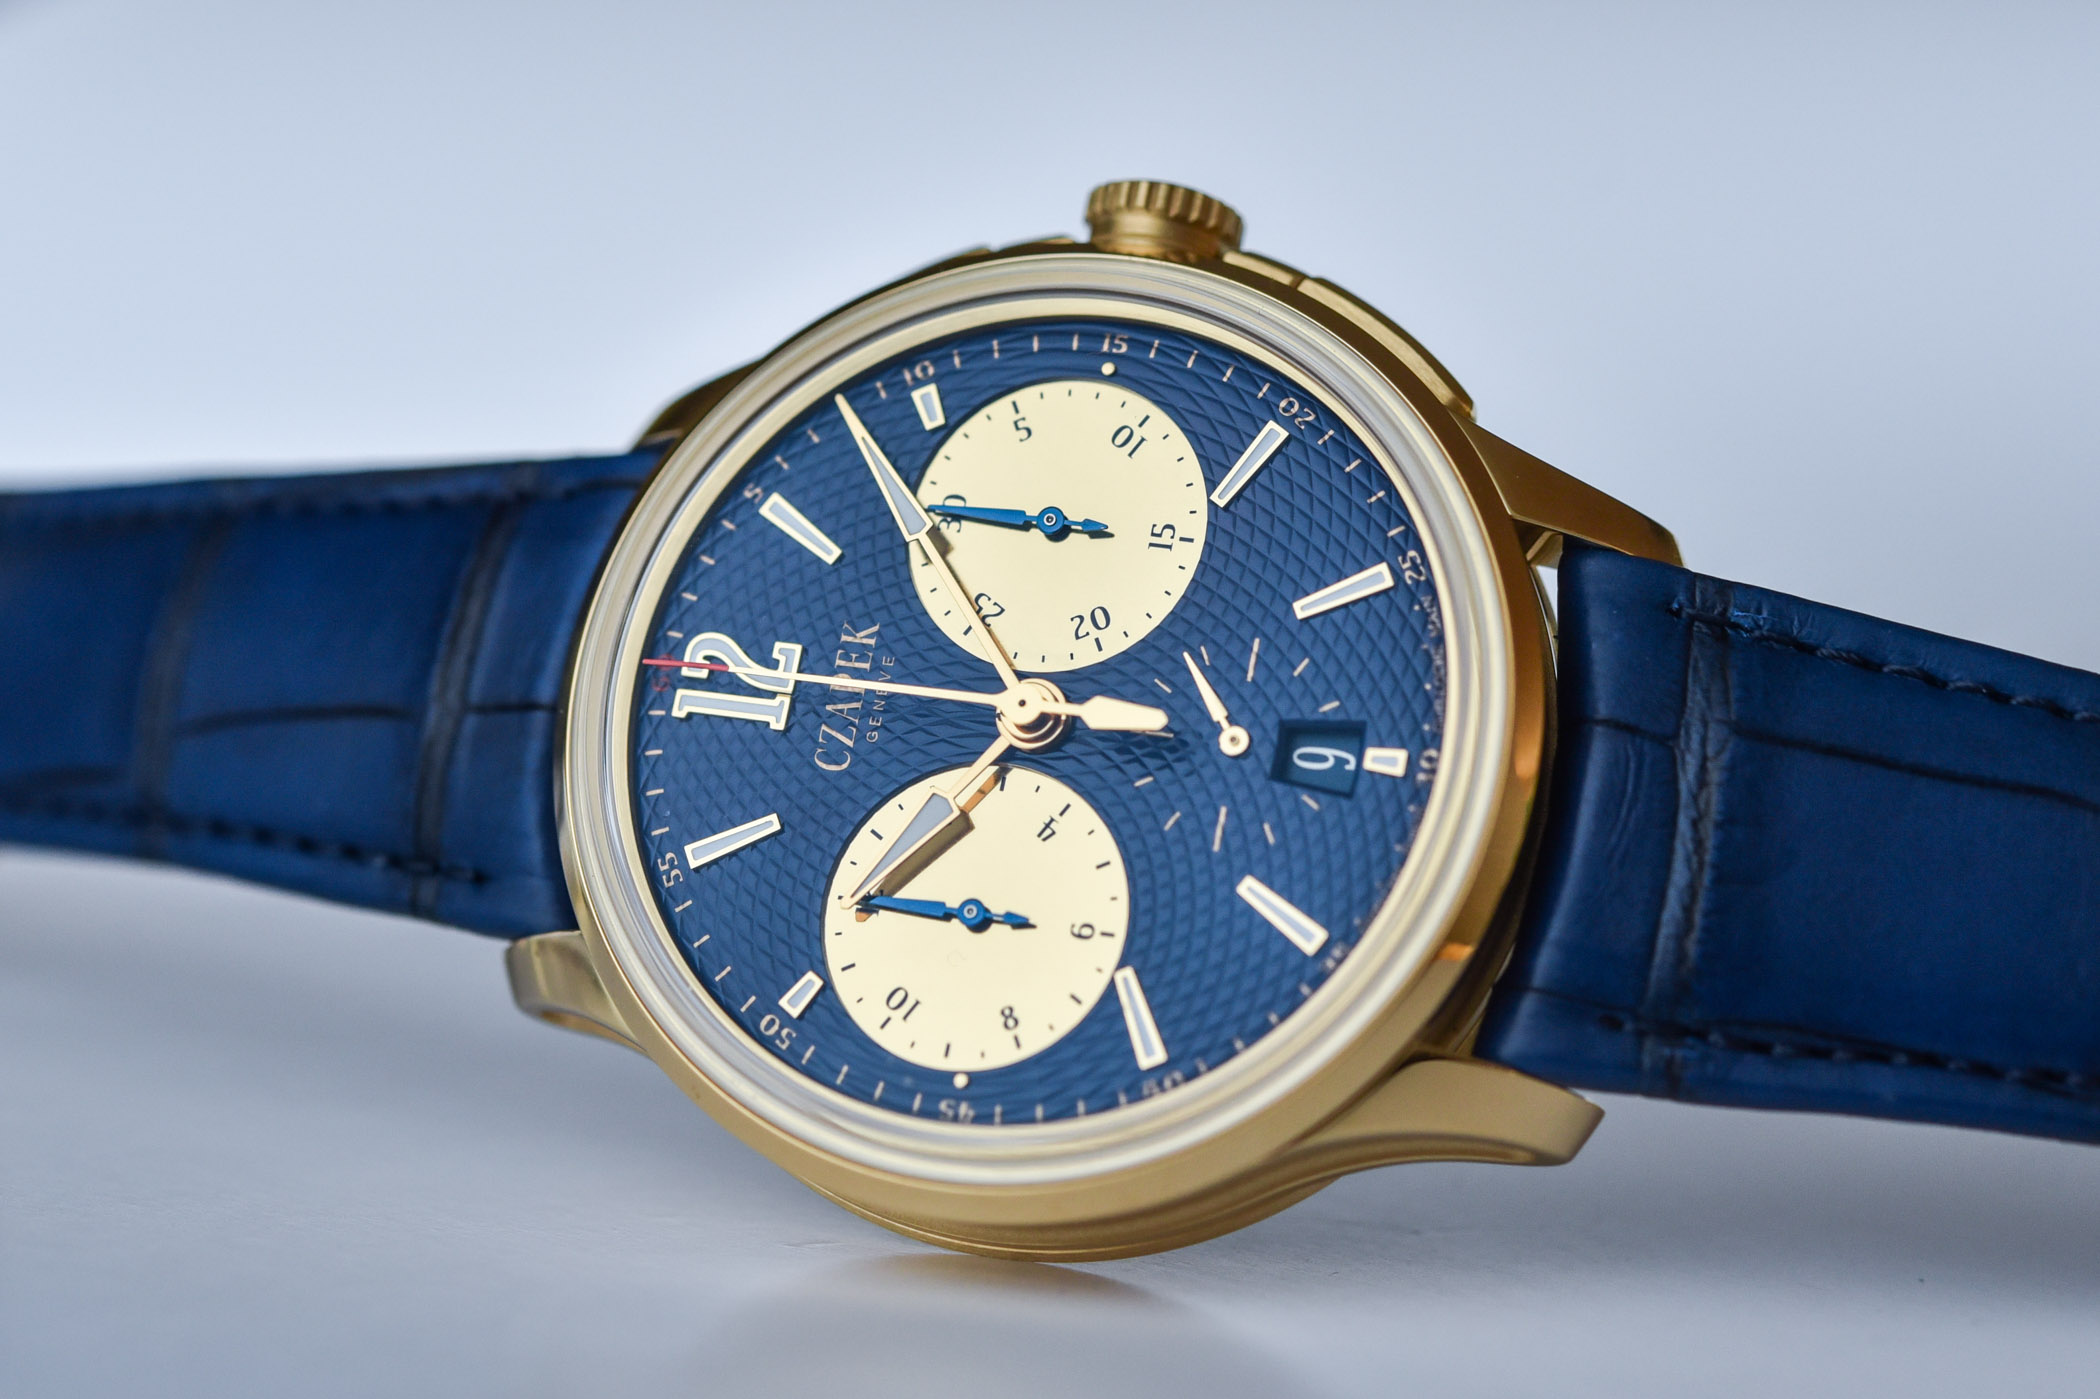 Czapek Faubourg de Cracovie Ocean d'Or Chronograph - 5